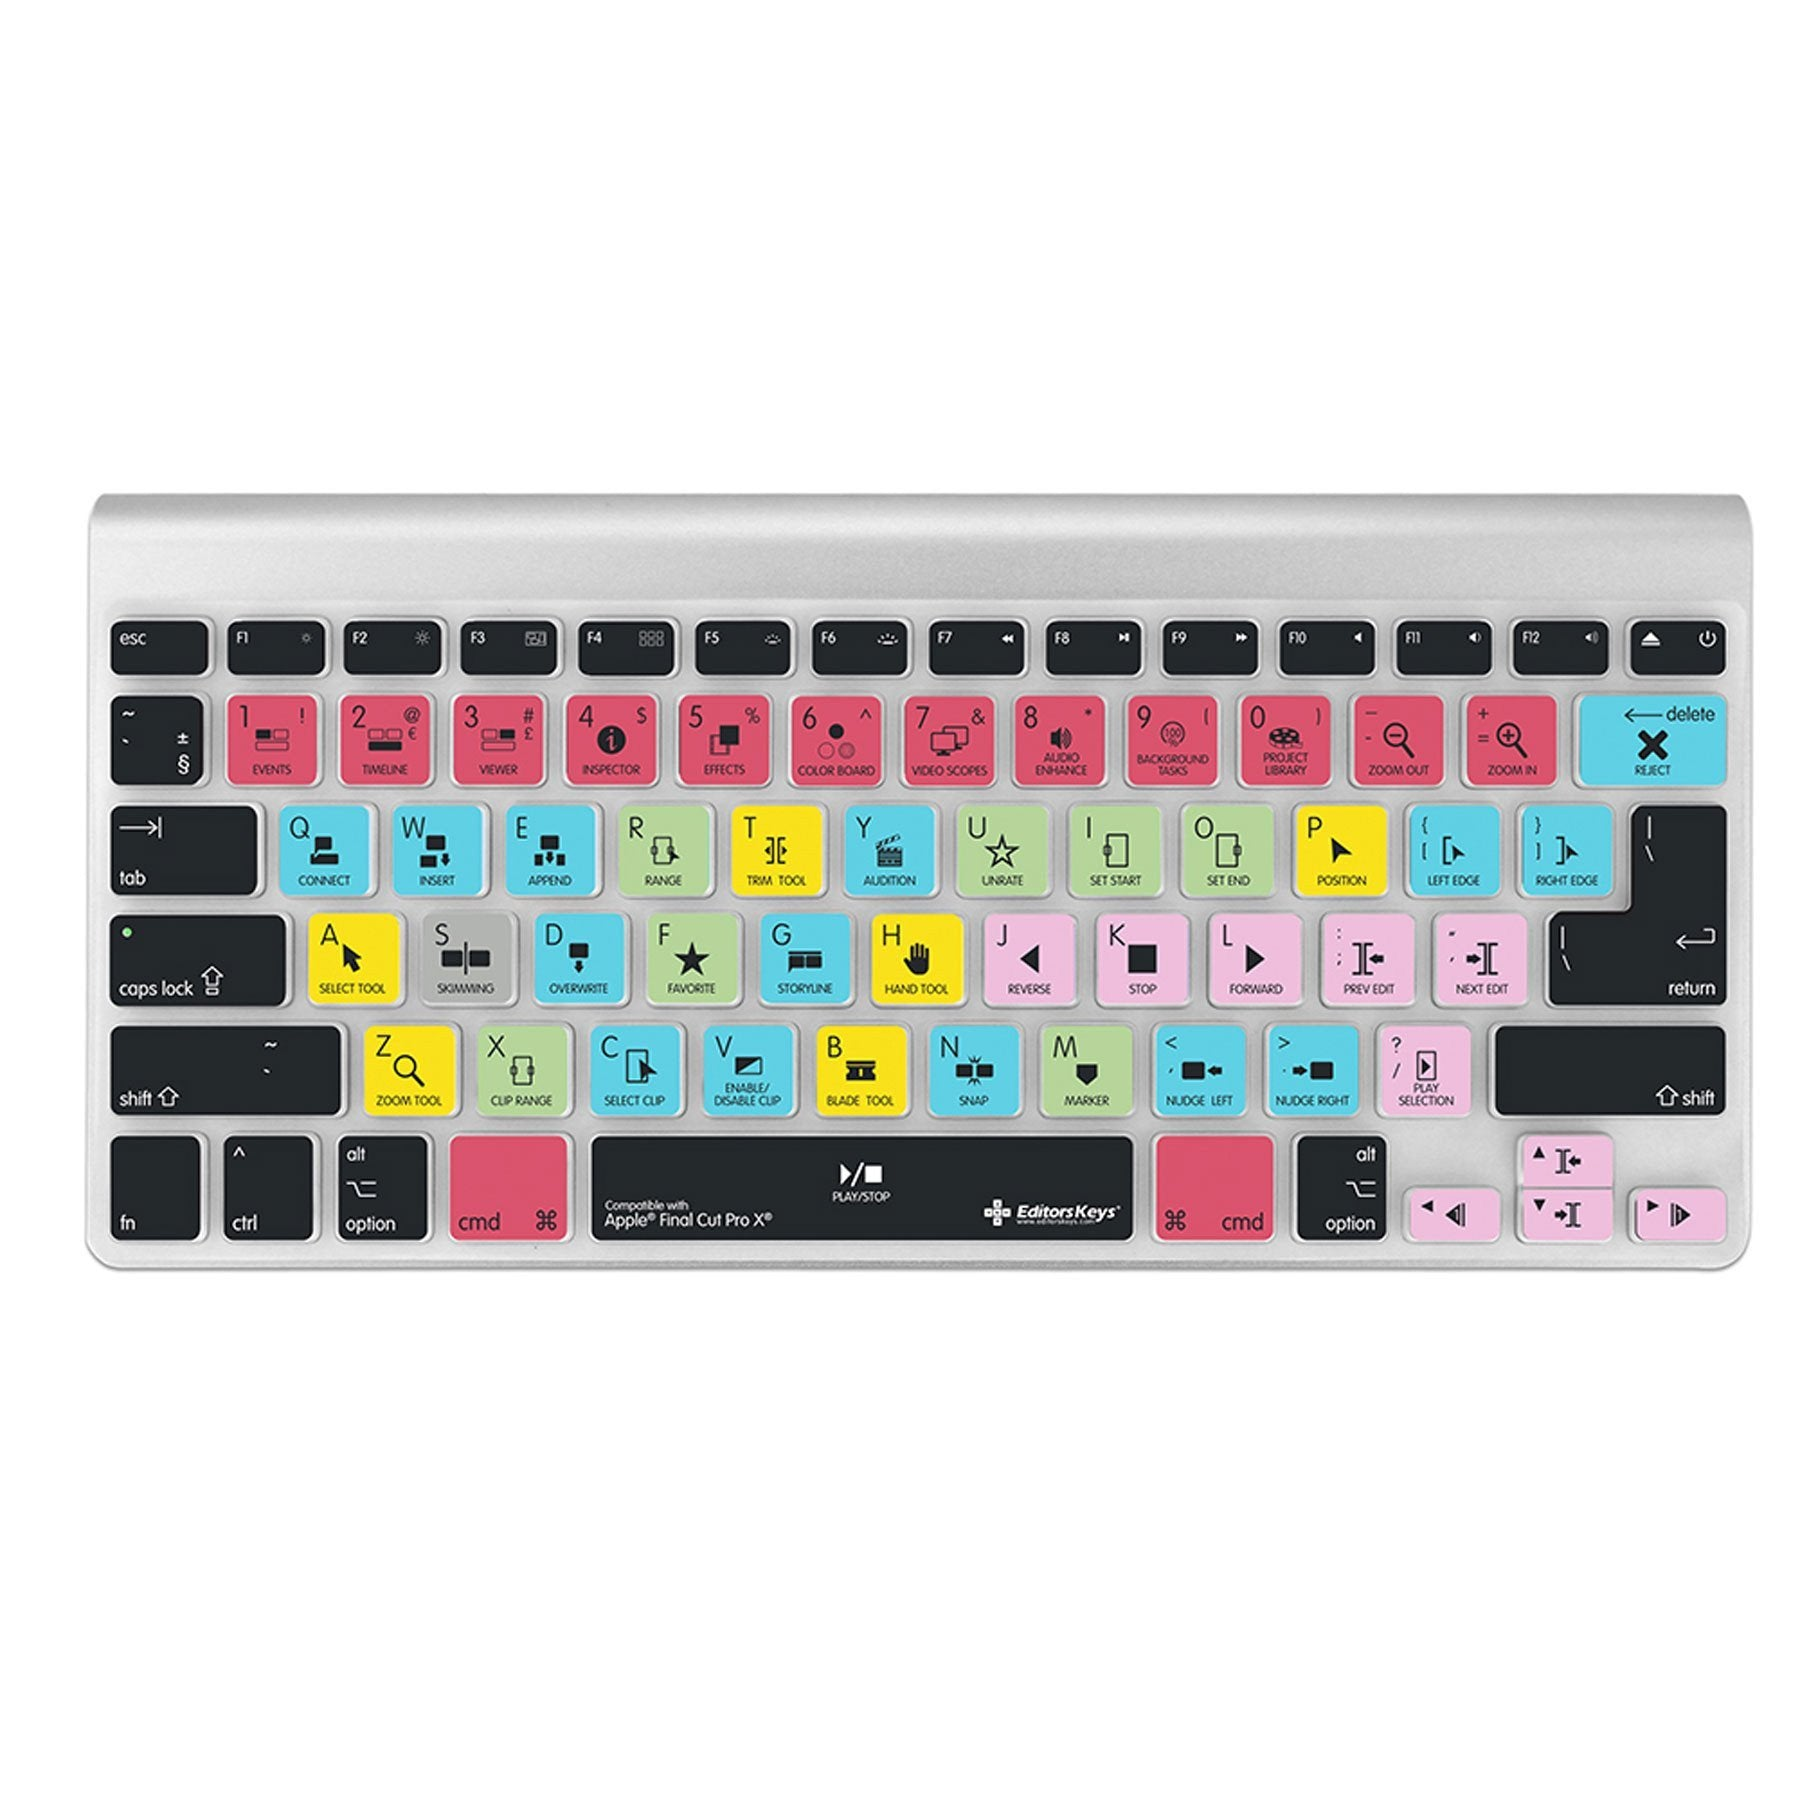 REFURB Final Cut Pro X Keyboard Covers for MacBook and iMac